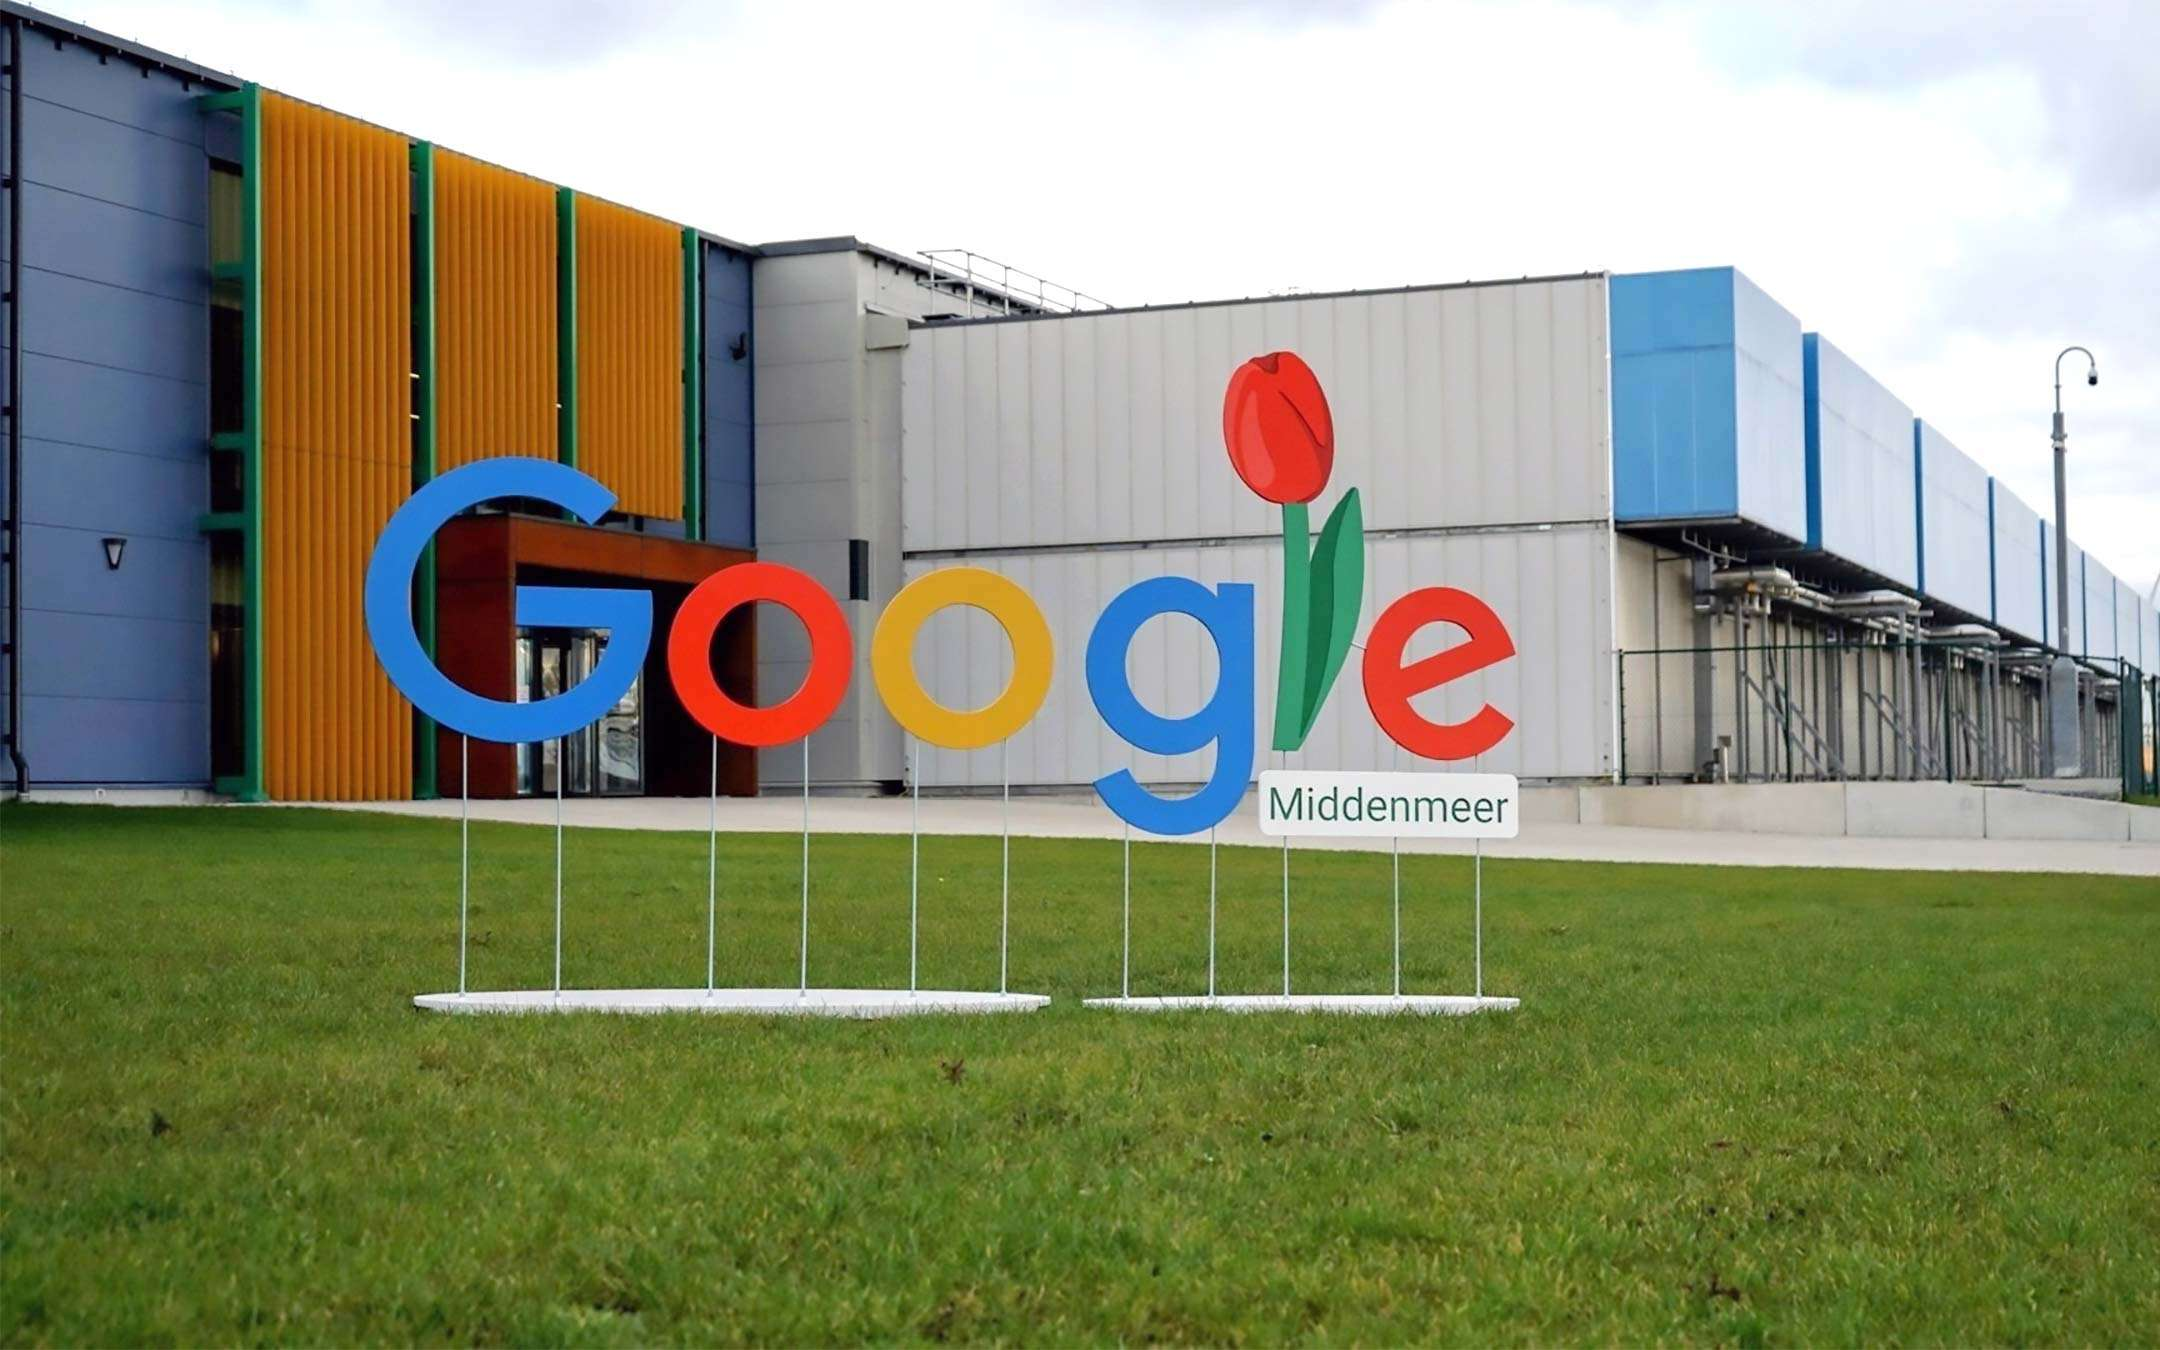 Google data centers in Europe and sustainability